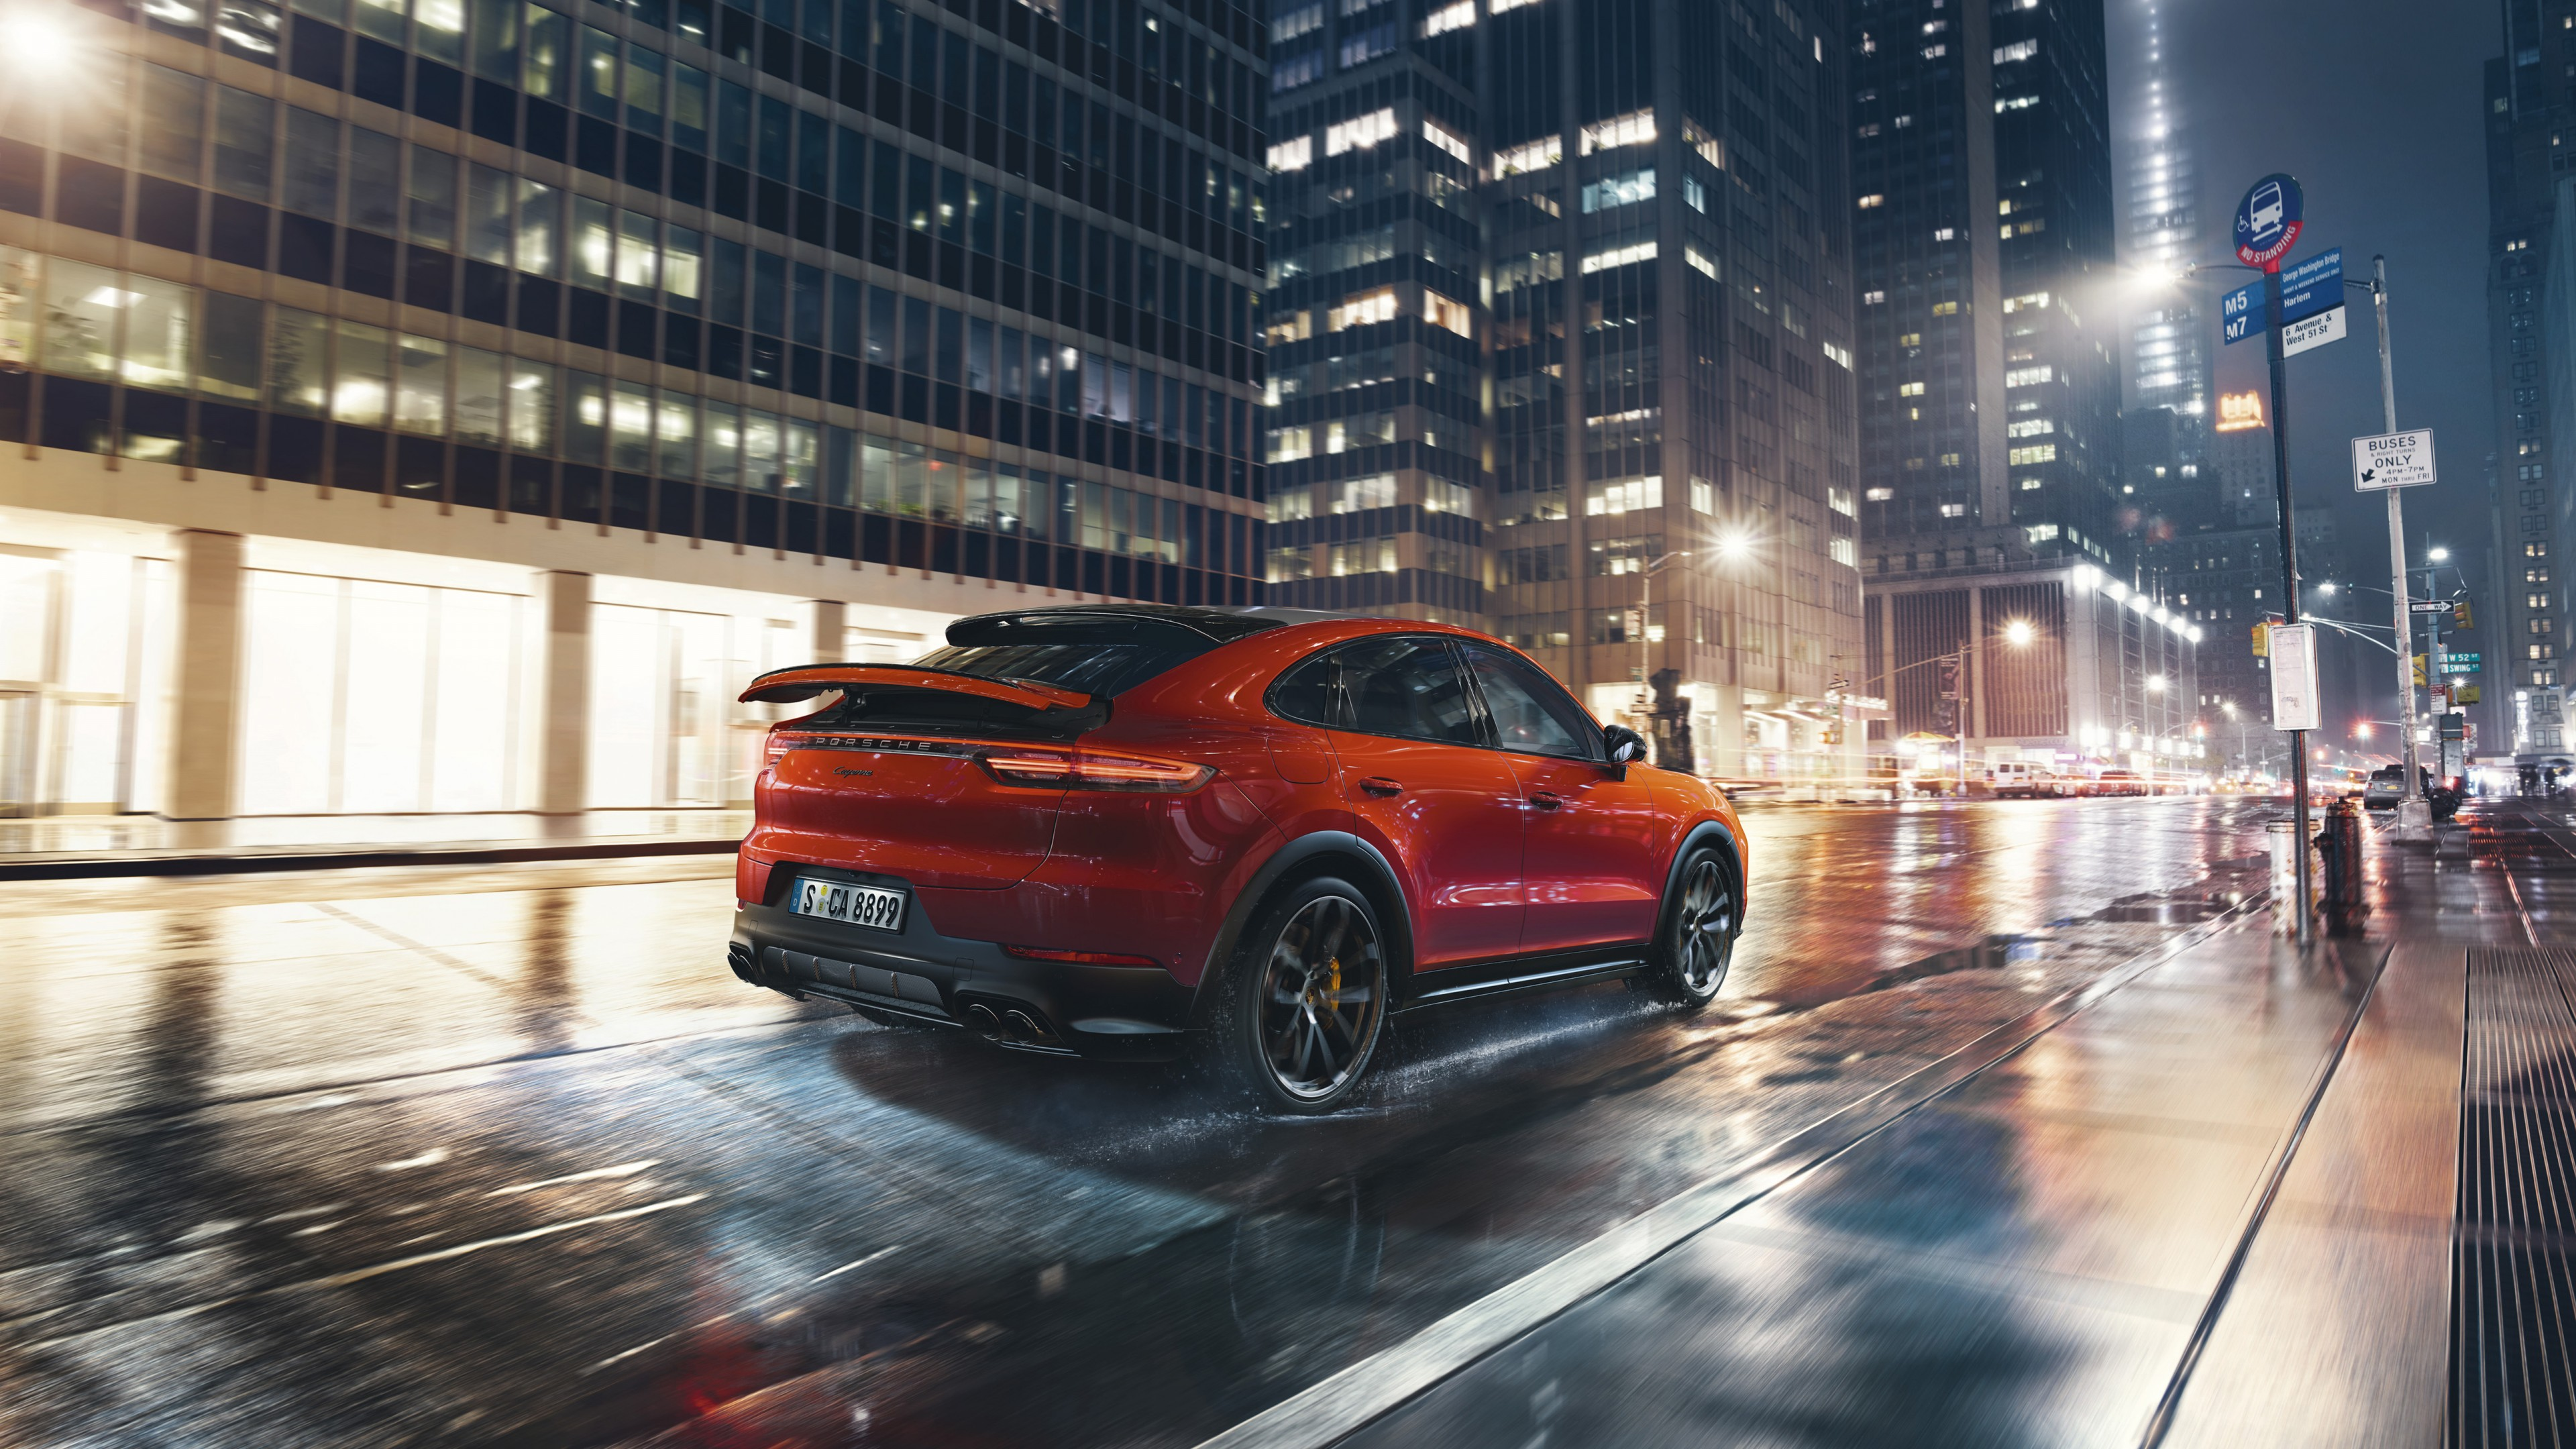 Porsche Cayenne Coupe 2019 4K 4 Wallpaper HD Car Wallpapers ID 3840x2160